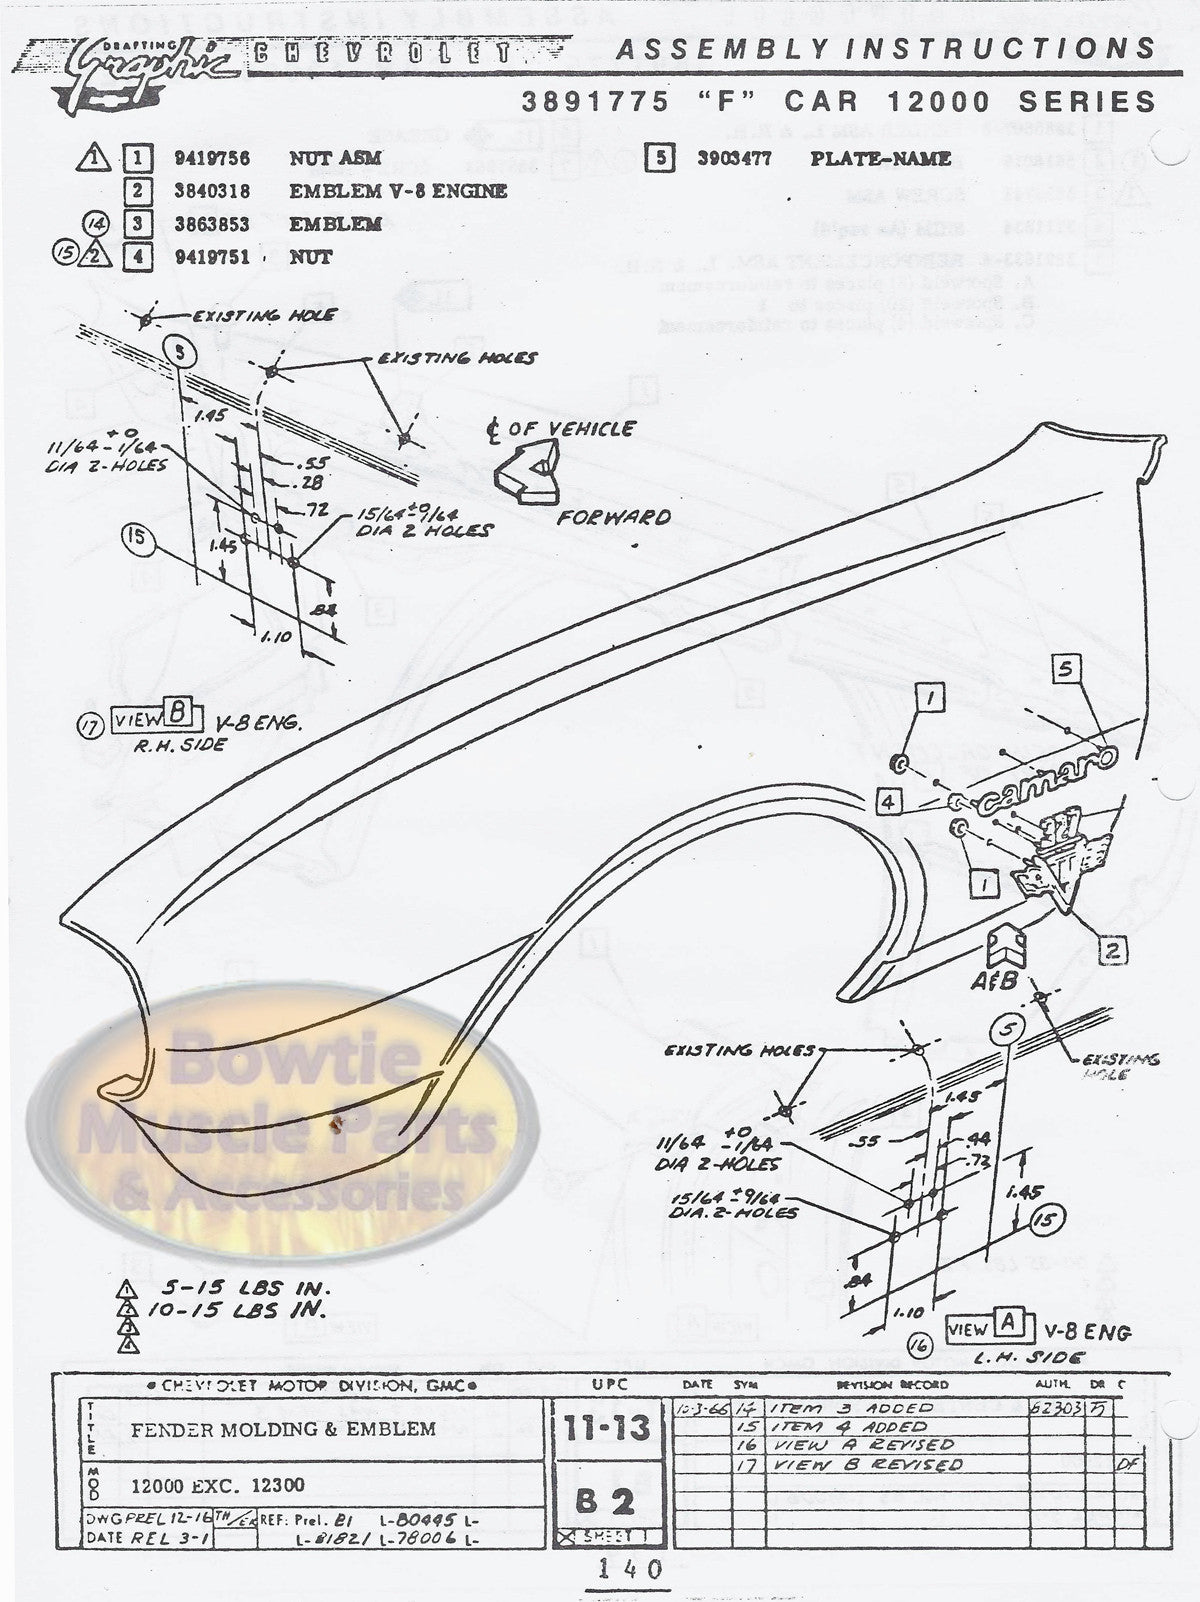 1972 72 Chevelle Malibu El Camino Monte Carlo SS Factory Assembly Manual  Book ...